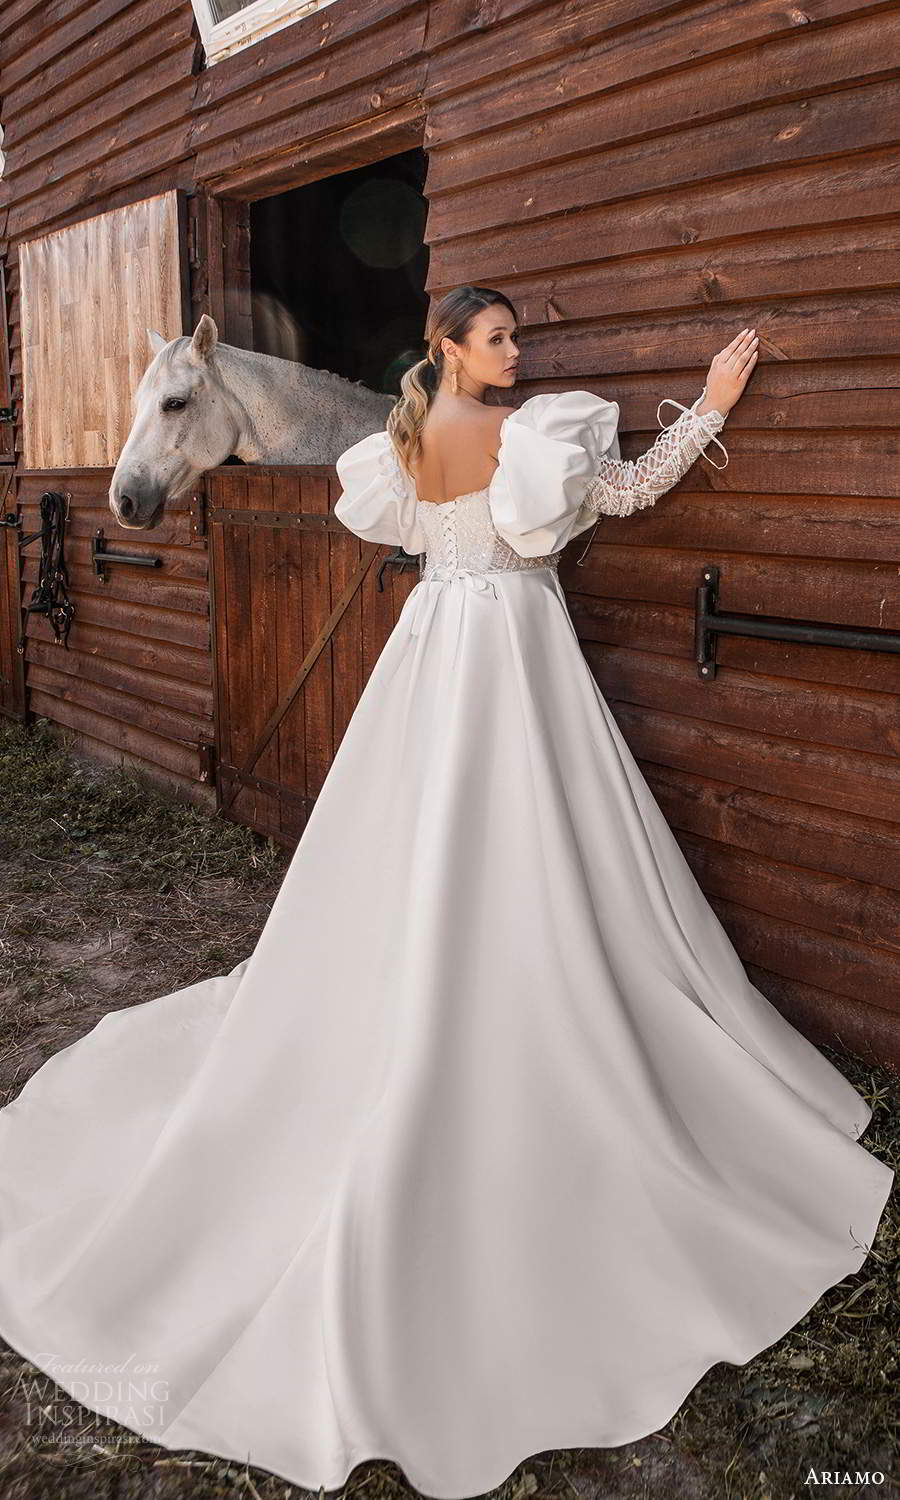 ariamo 2021 plus bridal detached long puff sleeves strapless sweetheart neckline embellished bodice a line ball gown wedding dress chapel train (3) bv